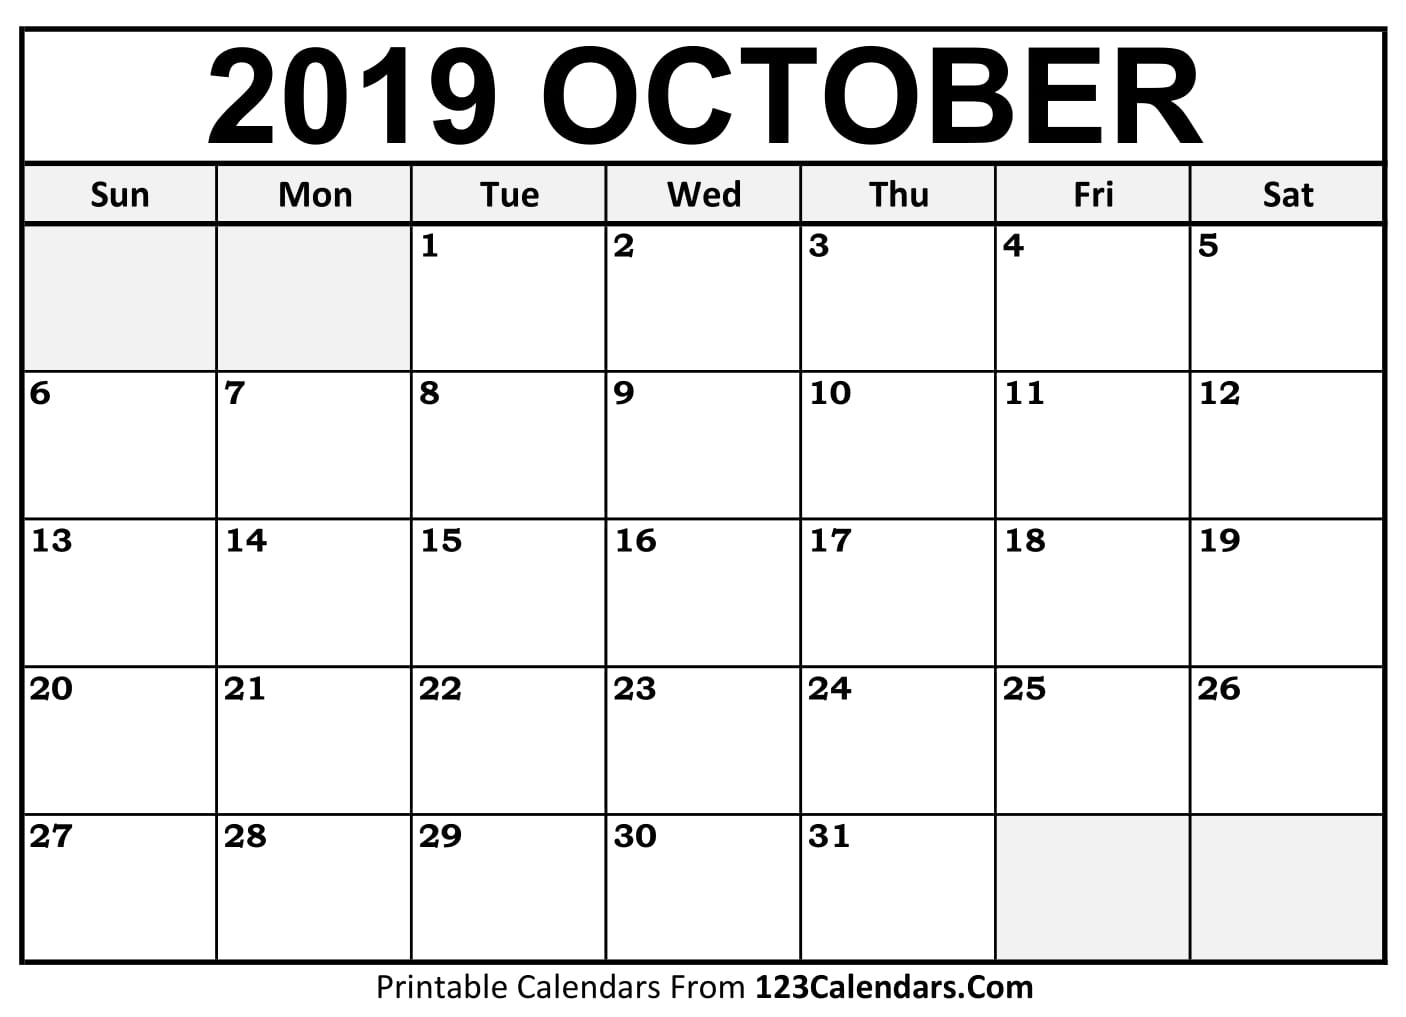 image about October Calendar Printable called Oct 2019 Printable Calendar